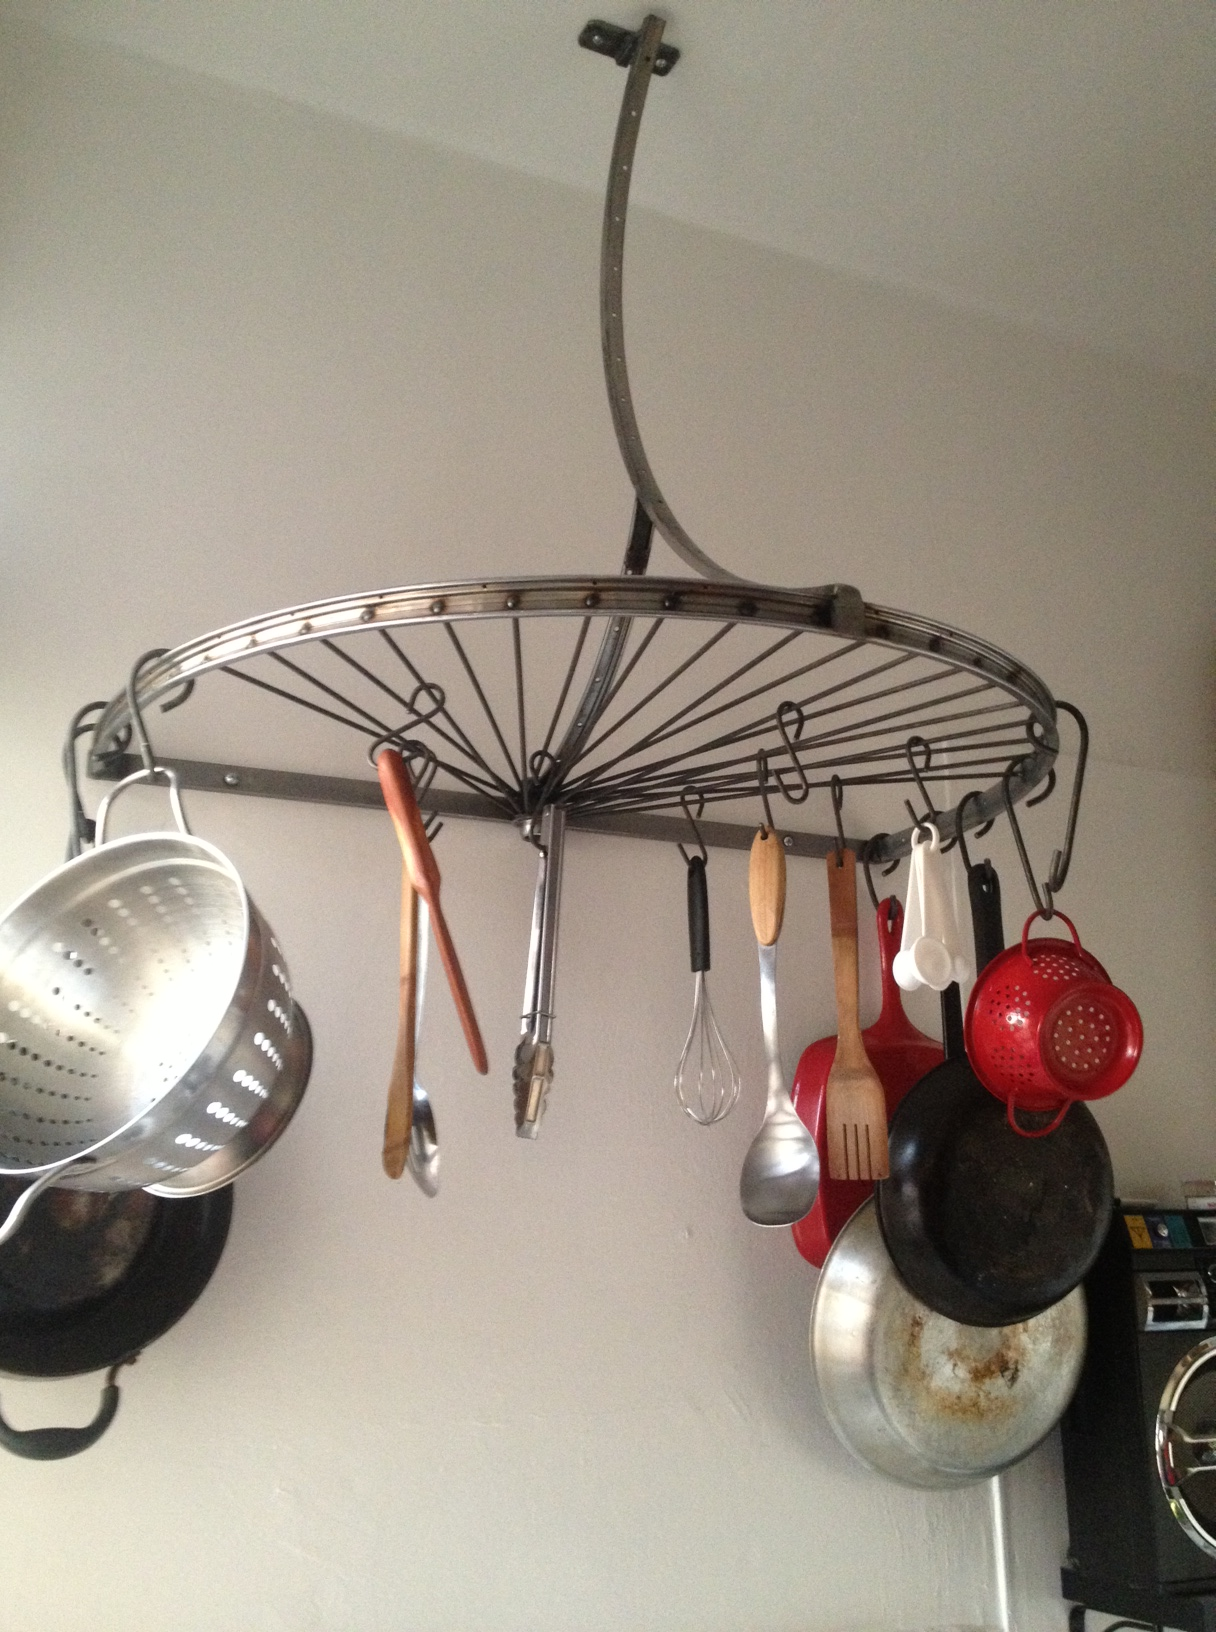 pot rack, potrack, nela, bike rim, kitchen, storage, solutions, interior design, elegant, curved, installation, koreatown, nela, los angeles, highland park